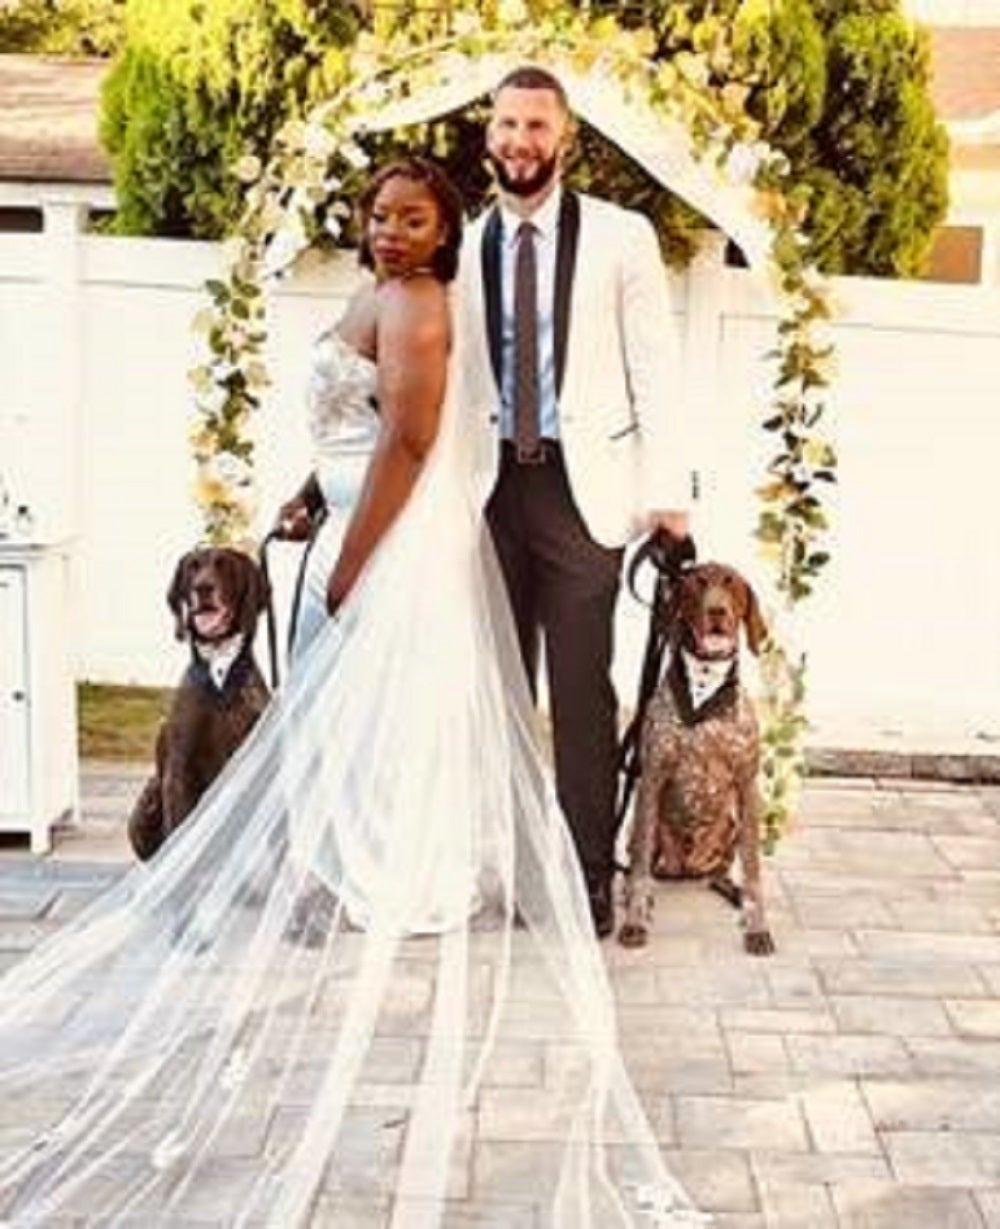 TSA canines Obelix and Proto participated in the June 2020 wedding of their TSA canine handlers. (TSA)